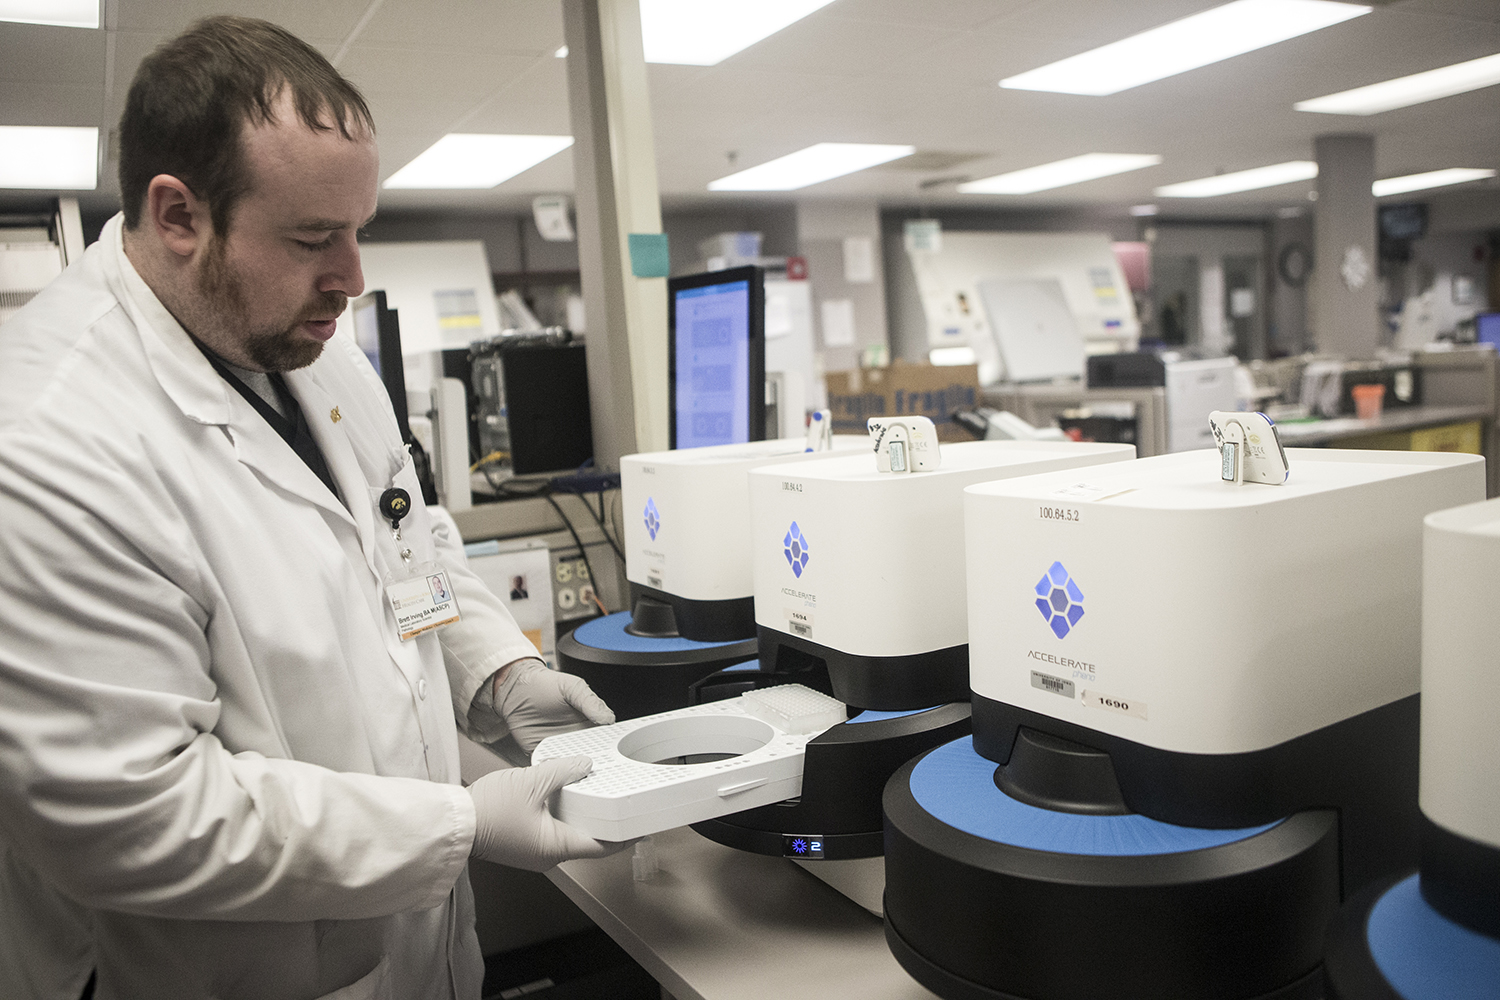 The Accelerate Pheno, a new technology that diagnoses Sepsis, is seen in a lab at the University of Iowa Hospitals and Clinics on Tuesday, January 22, 2019. Lab scientist Brett Irving demonstrates how to use the technology.